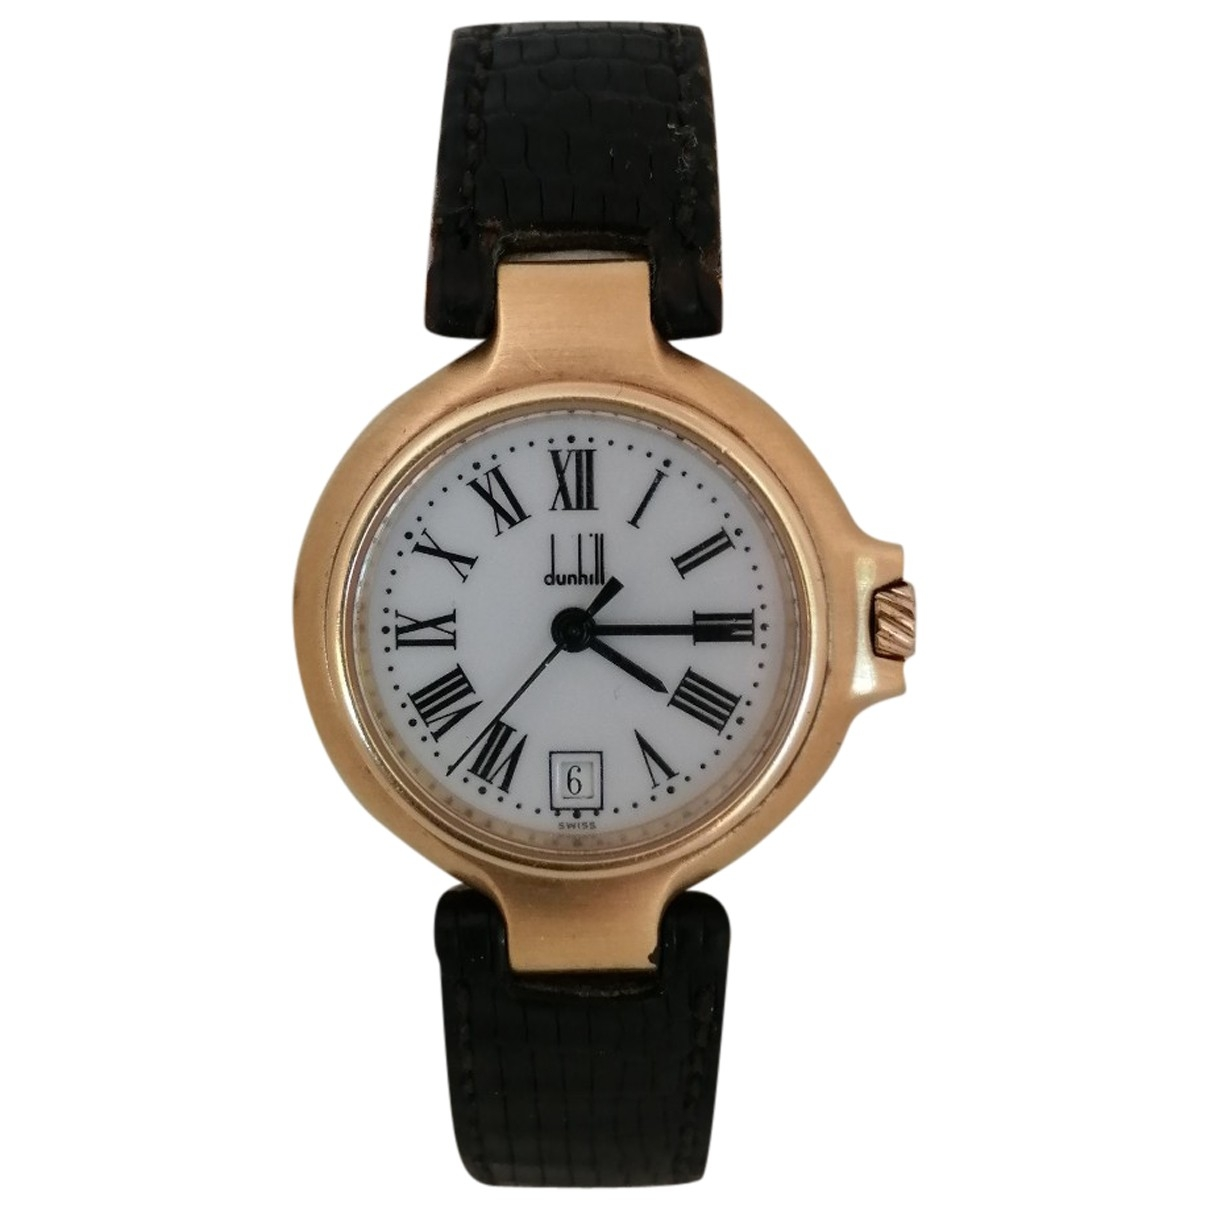 Alfred Dunhill \N Gold Gold plated watch for Women \N